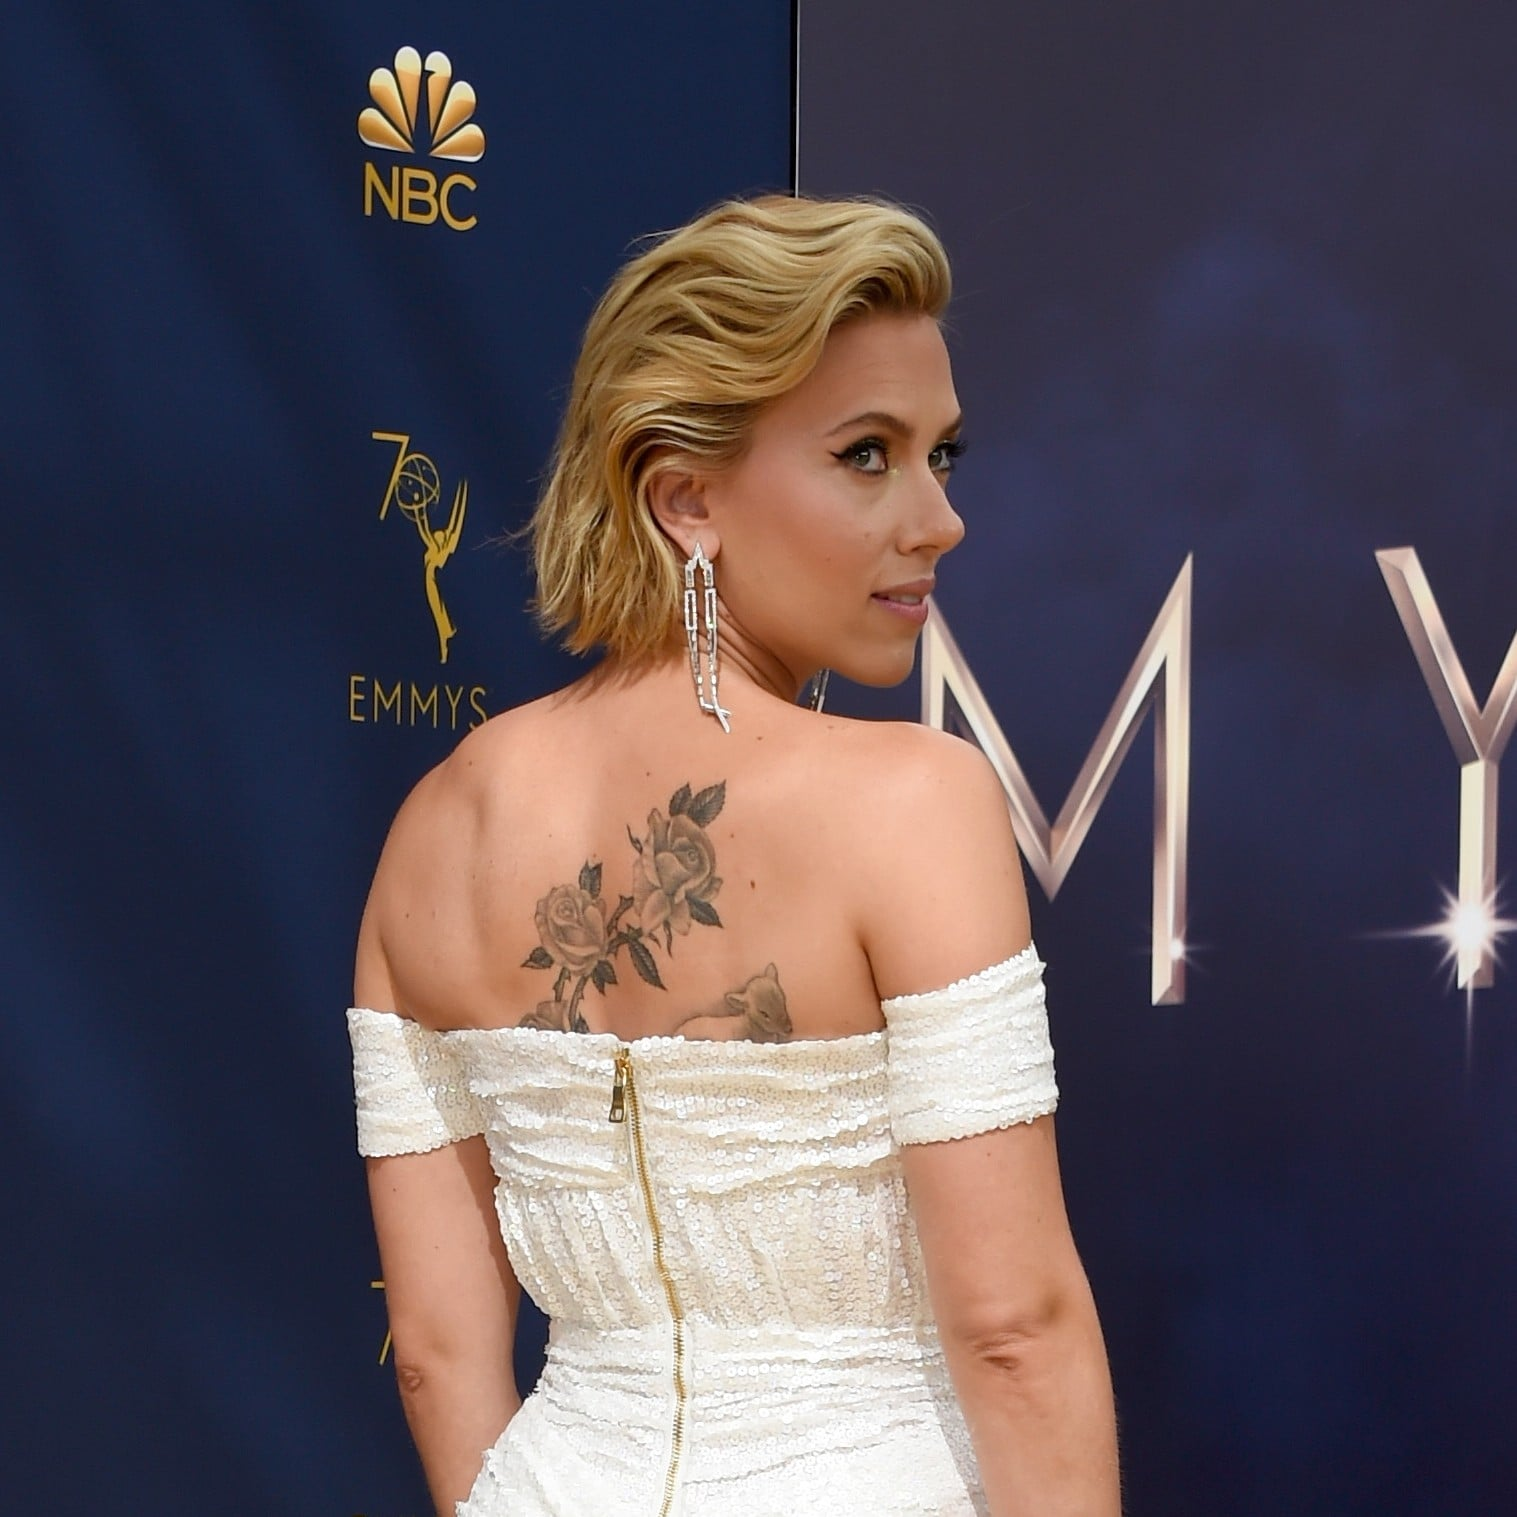 Scarlett Johansson Tattoos – What Can I Do With a Star Tattoo?